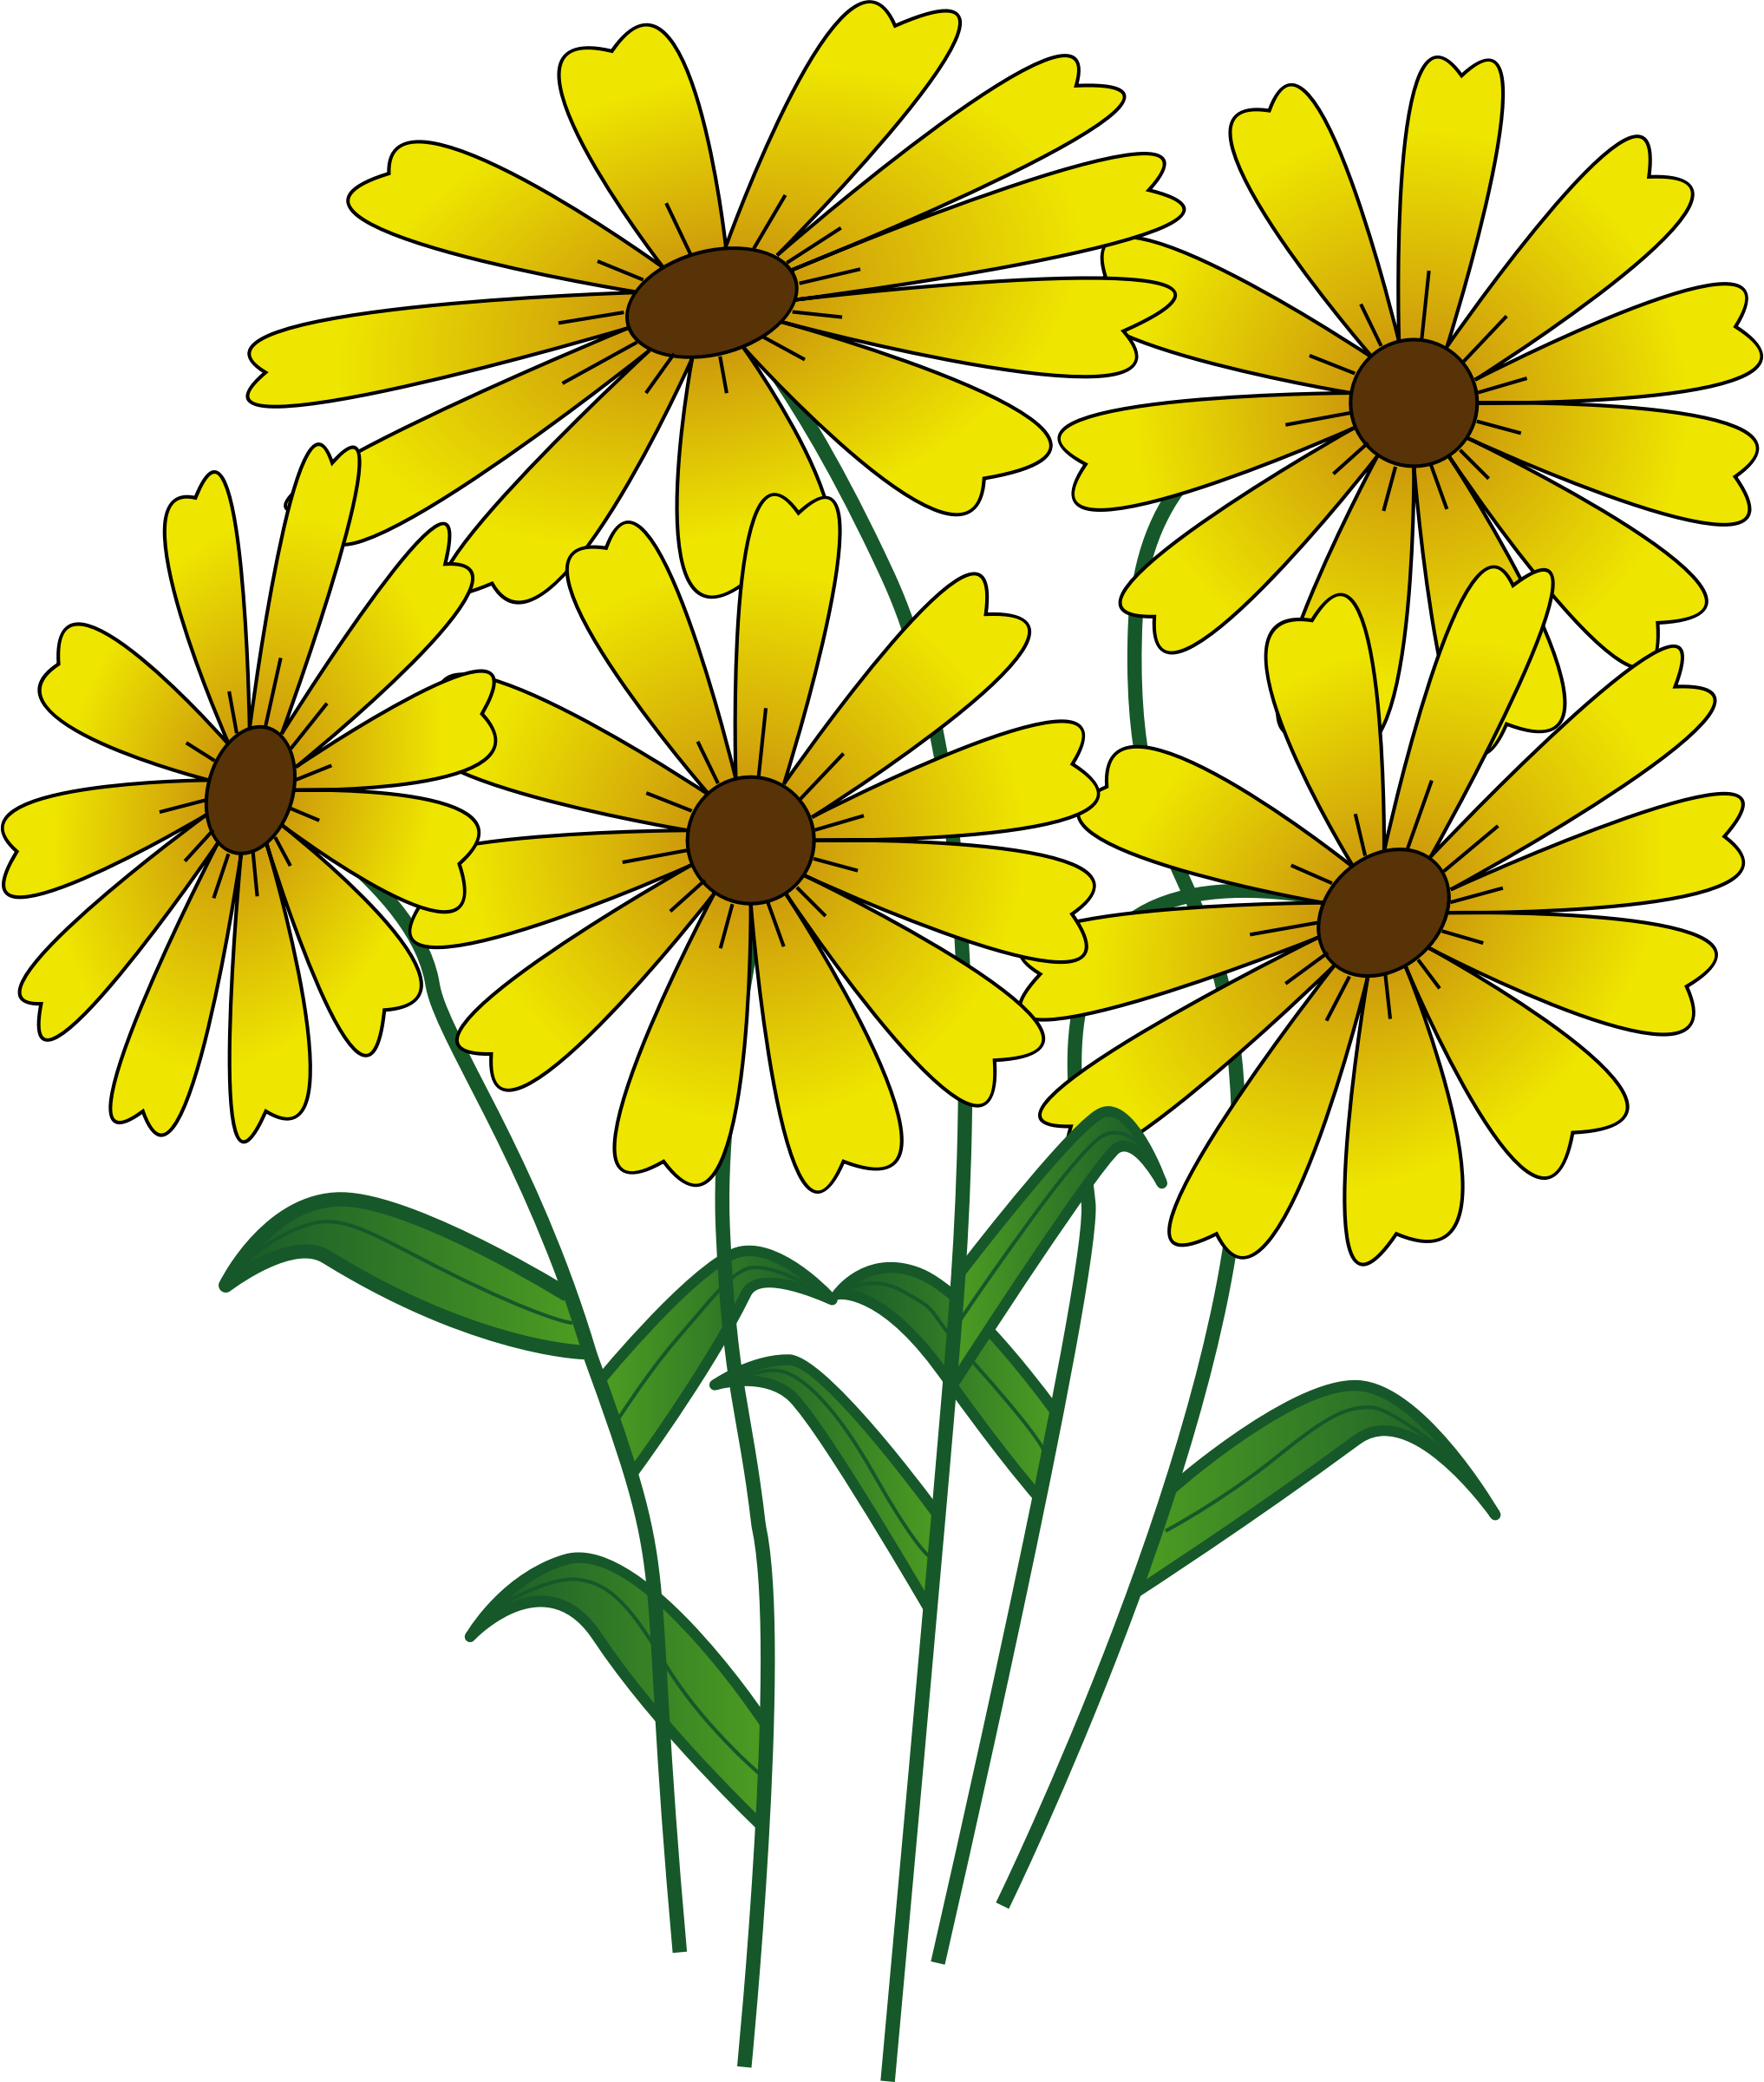 Flowers big image png. Clipart fall flower